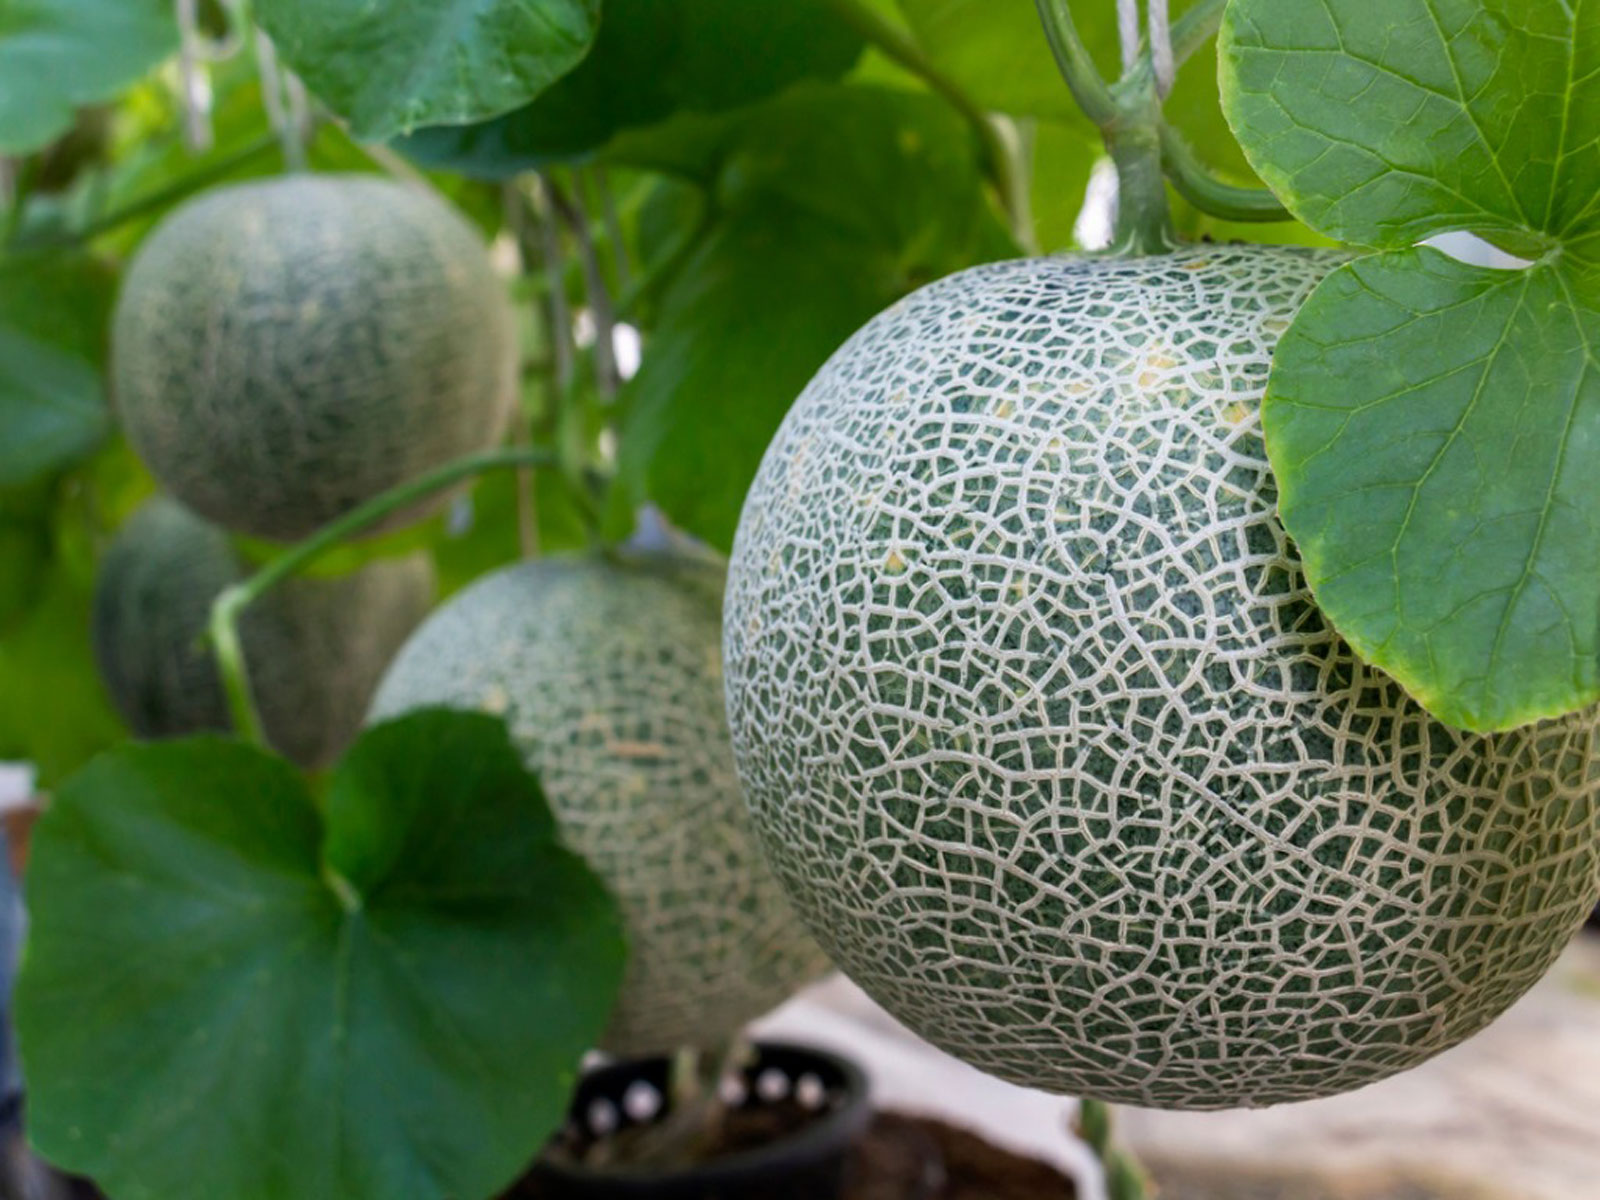 How To Prune A Cantaloupe Plant Should You Prune Cantaloupe Vines Use them in commercial designs under lifetime, perpetual & worldwide rights. should you prune cantaloupe vines